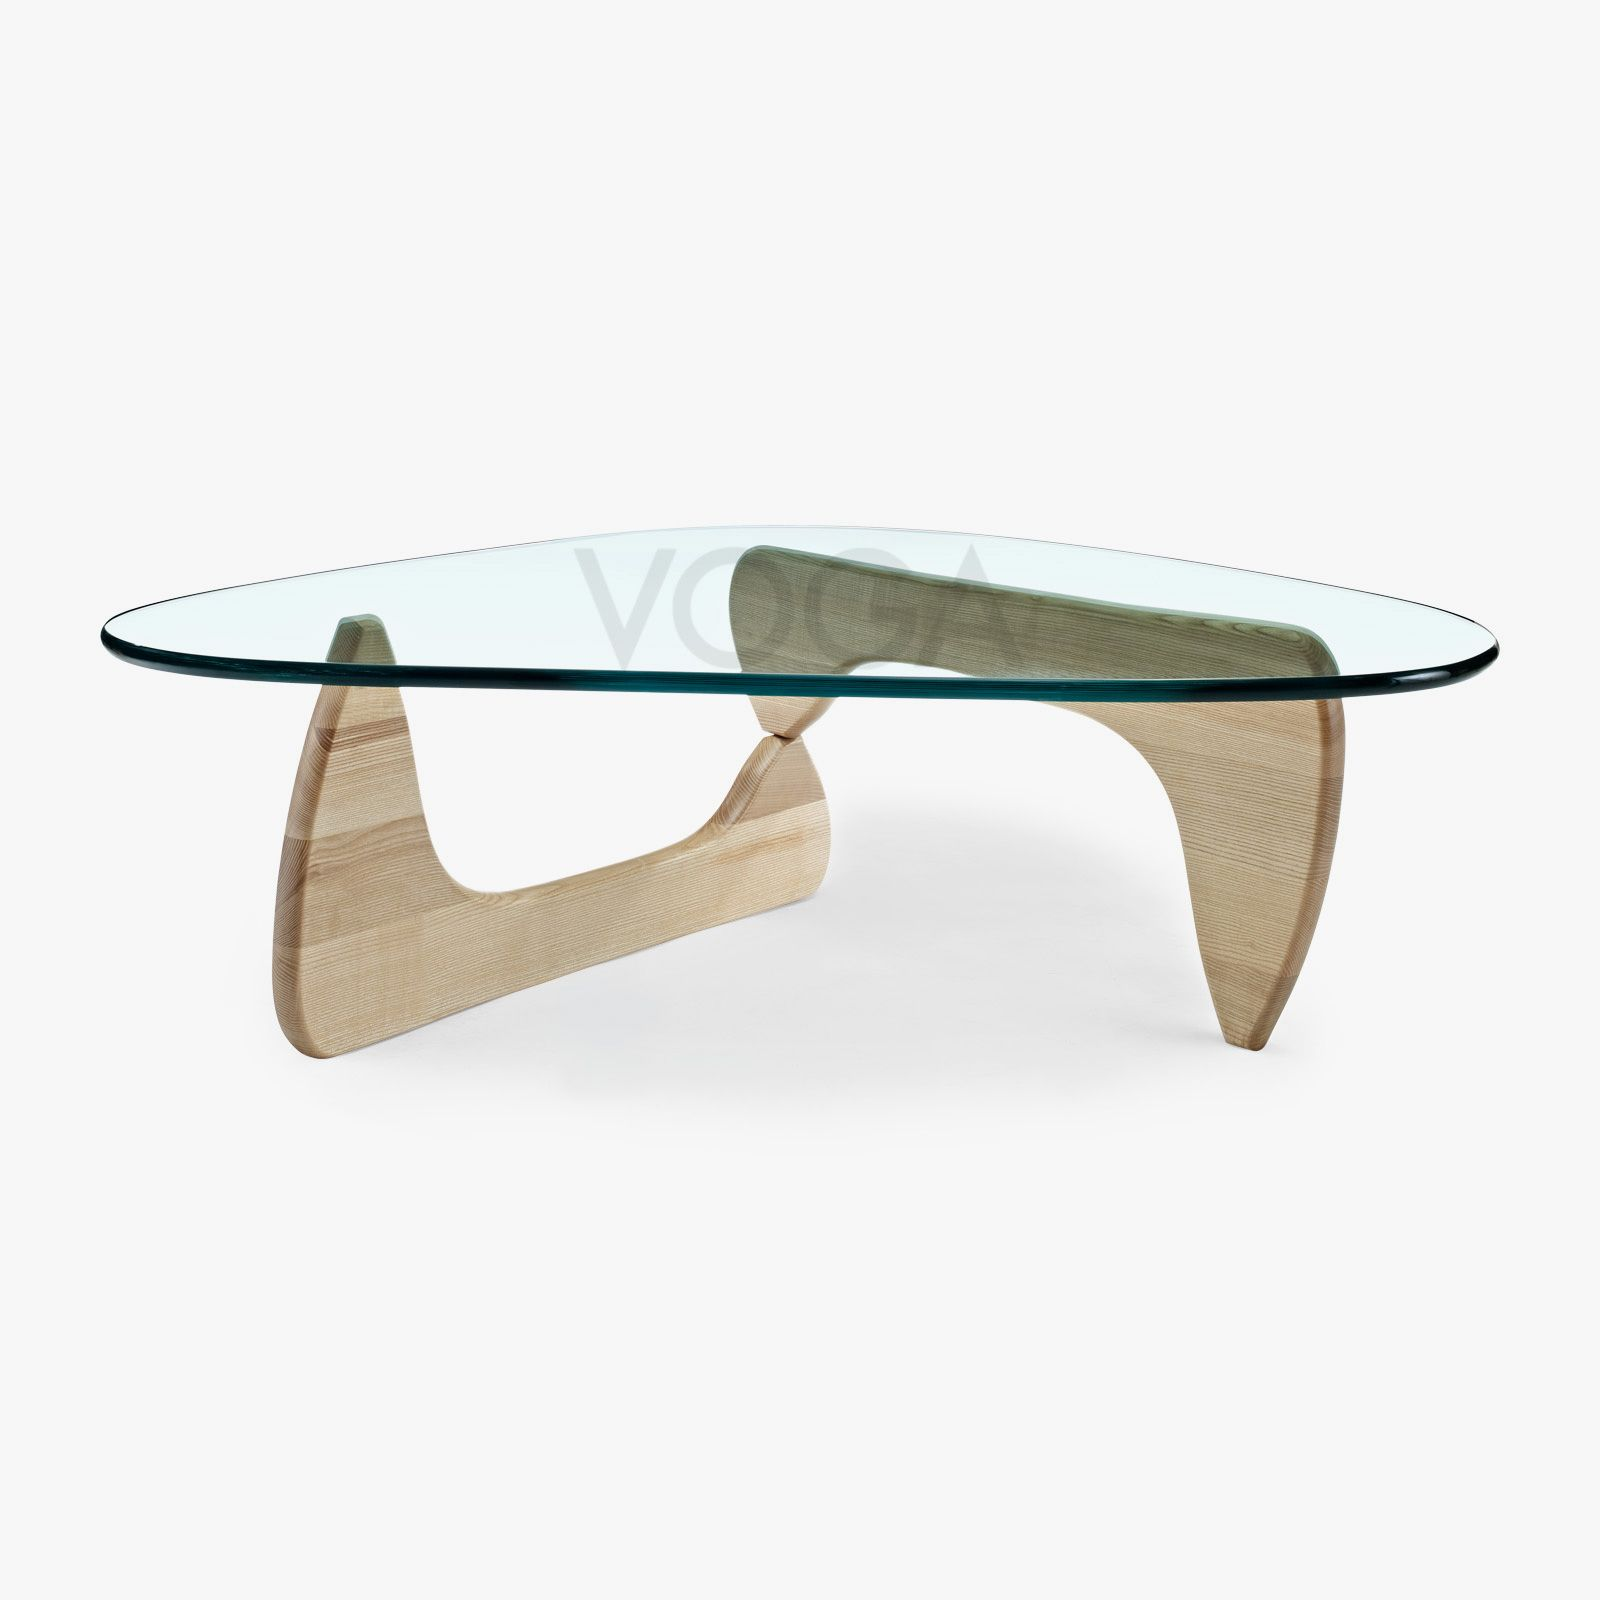 The isamu noguchi coffee table is available at voga villa the isamu noguchi coffee table is available at voga geotapseo Gallery